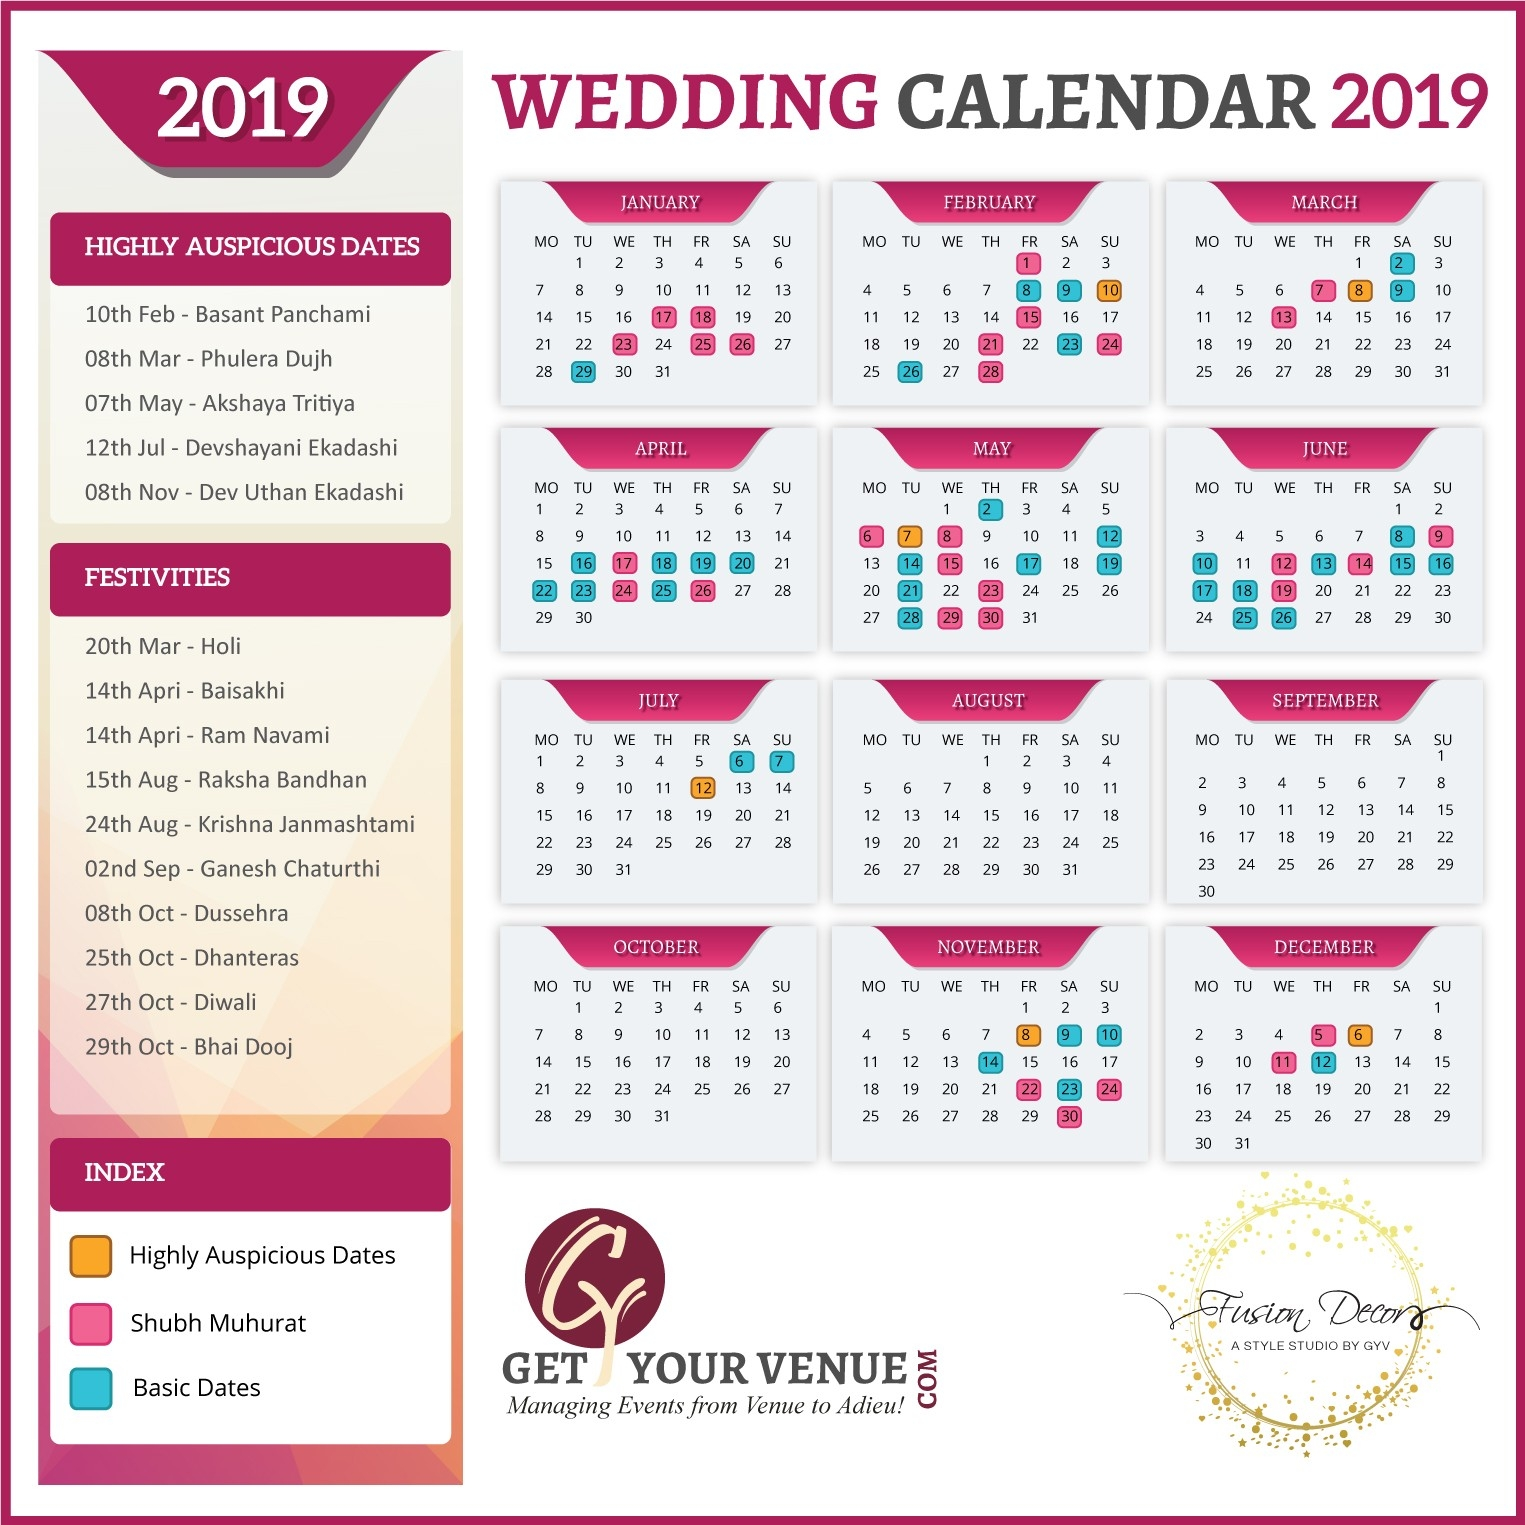 Best Wedding Dates To Get Married In 2019 - Gyv Blog-Marriage Dates In January 2020 Hindu Calendar